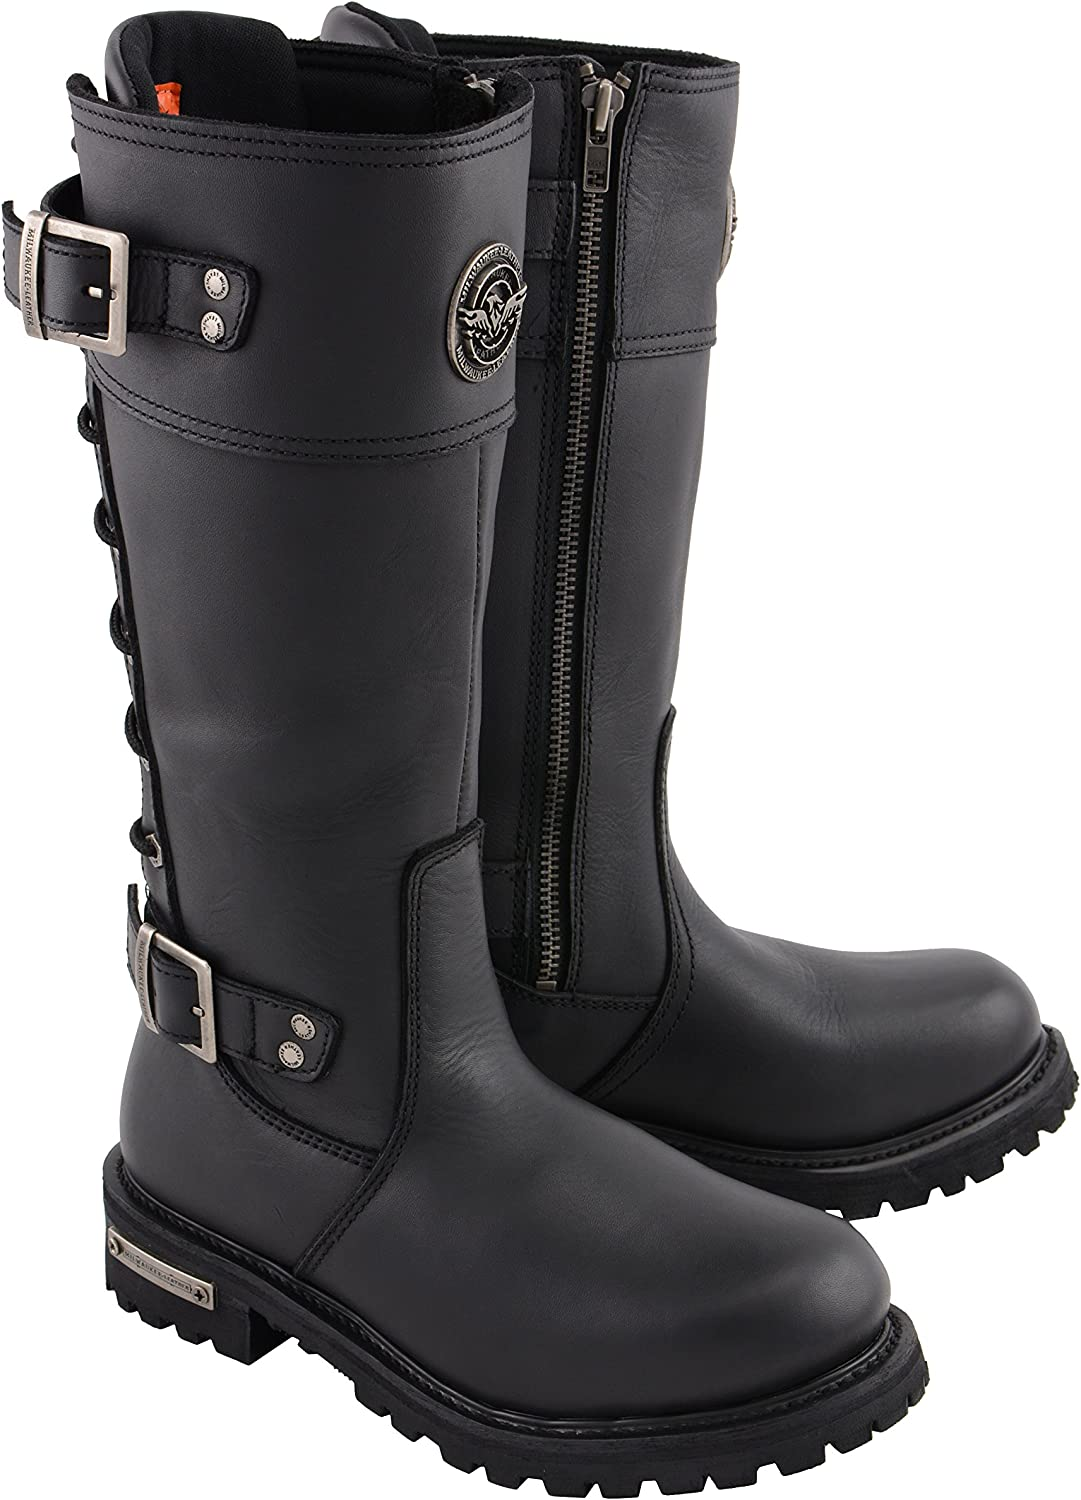 Milwaukee Leather MBL9385-BLACK-5 Women's Calf Laced Riding Boot Black, 5